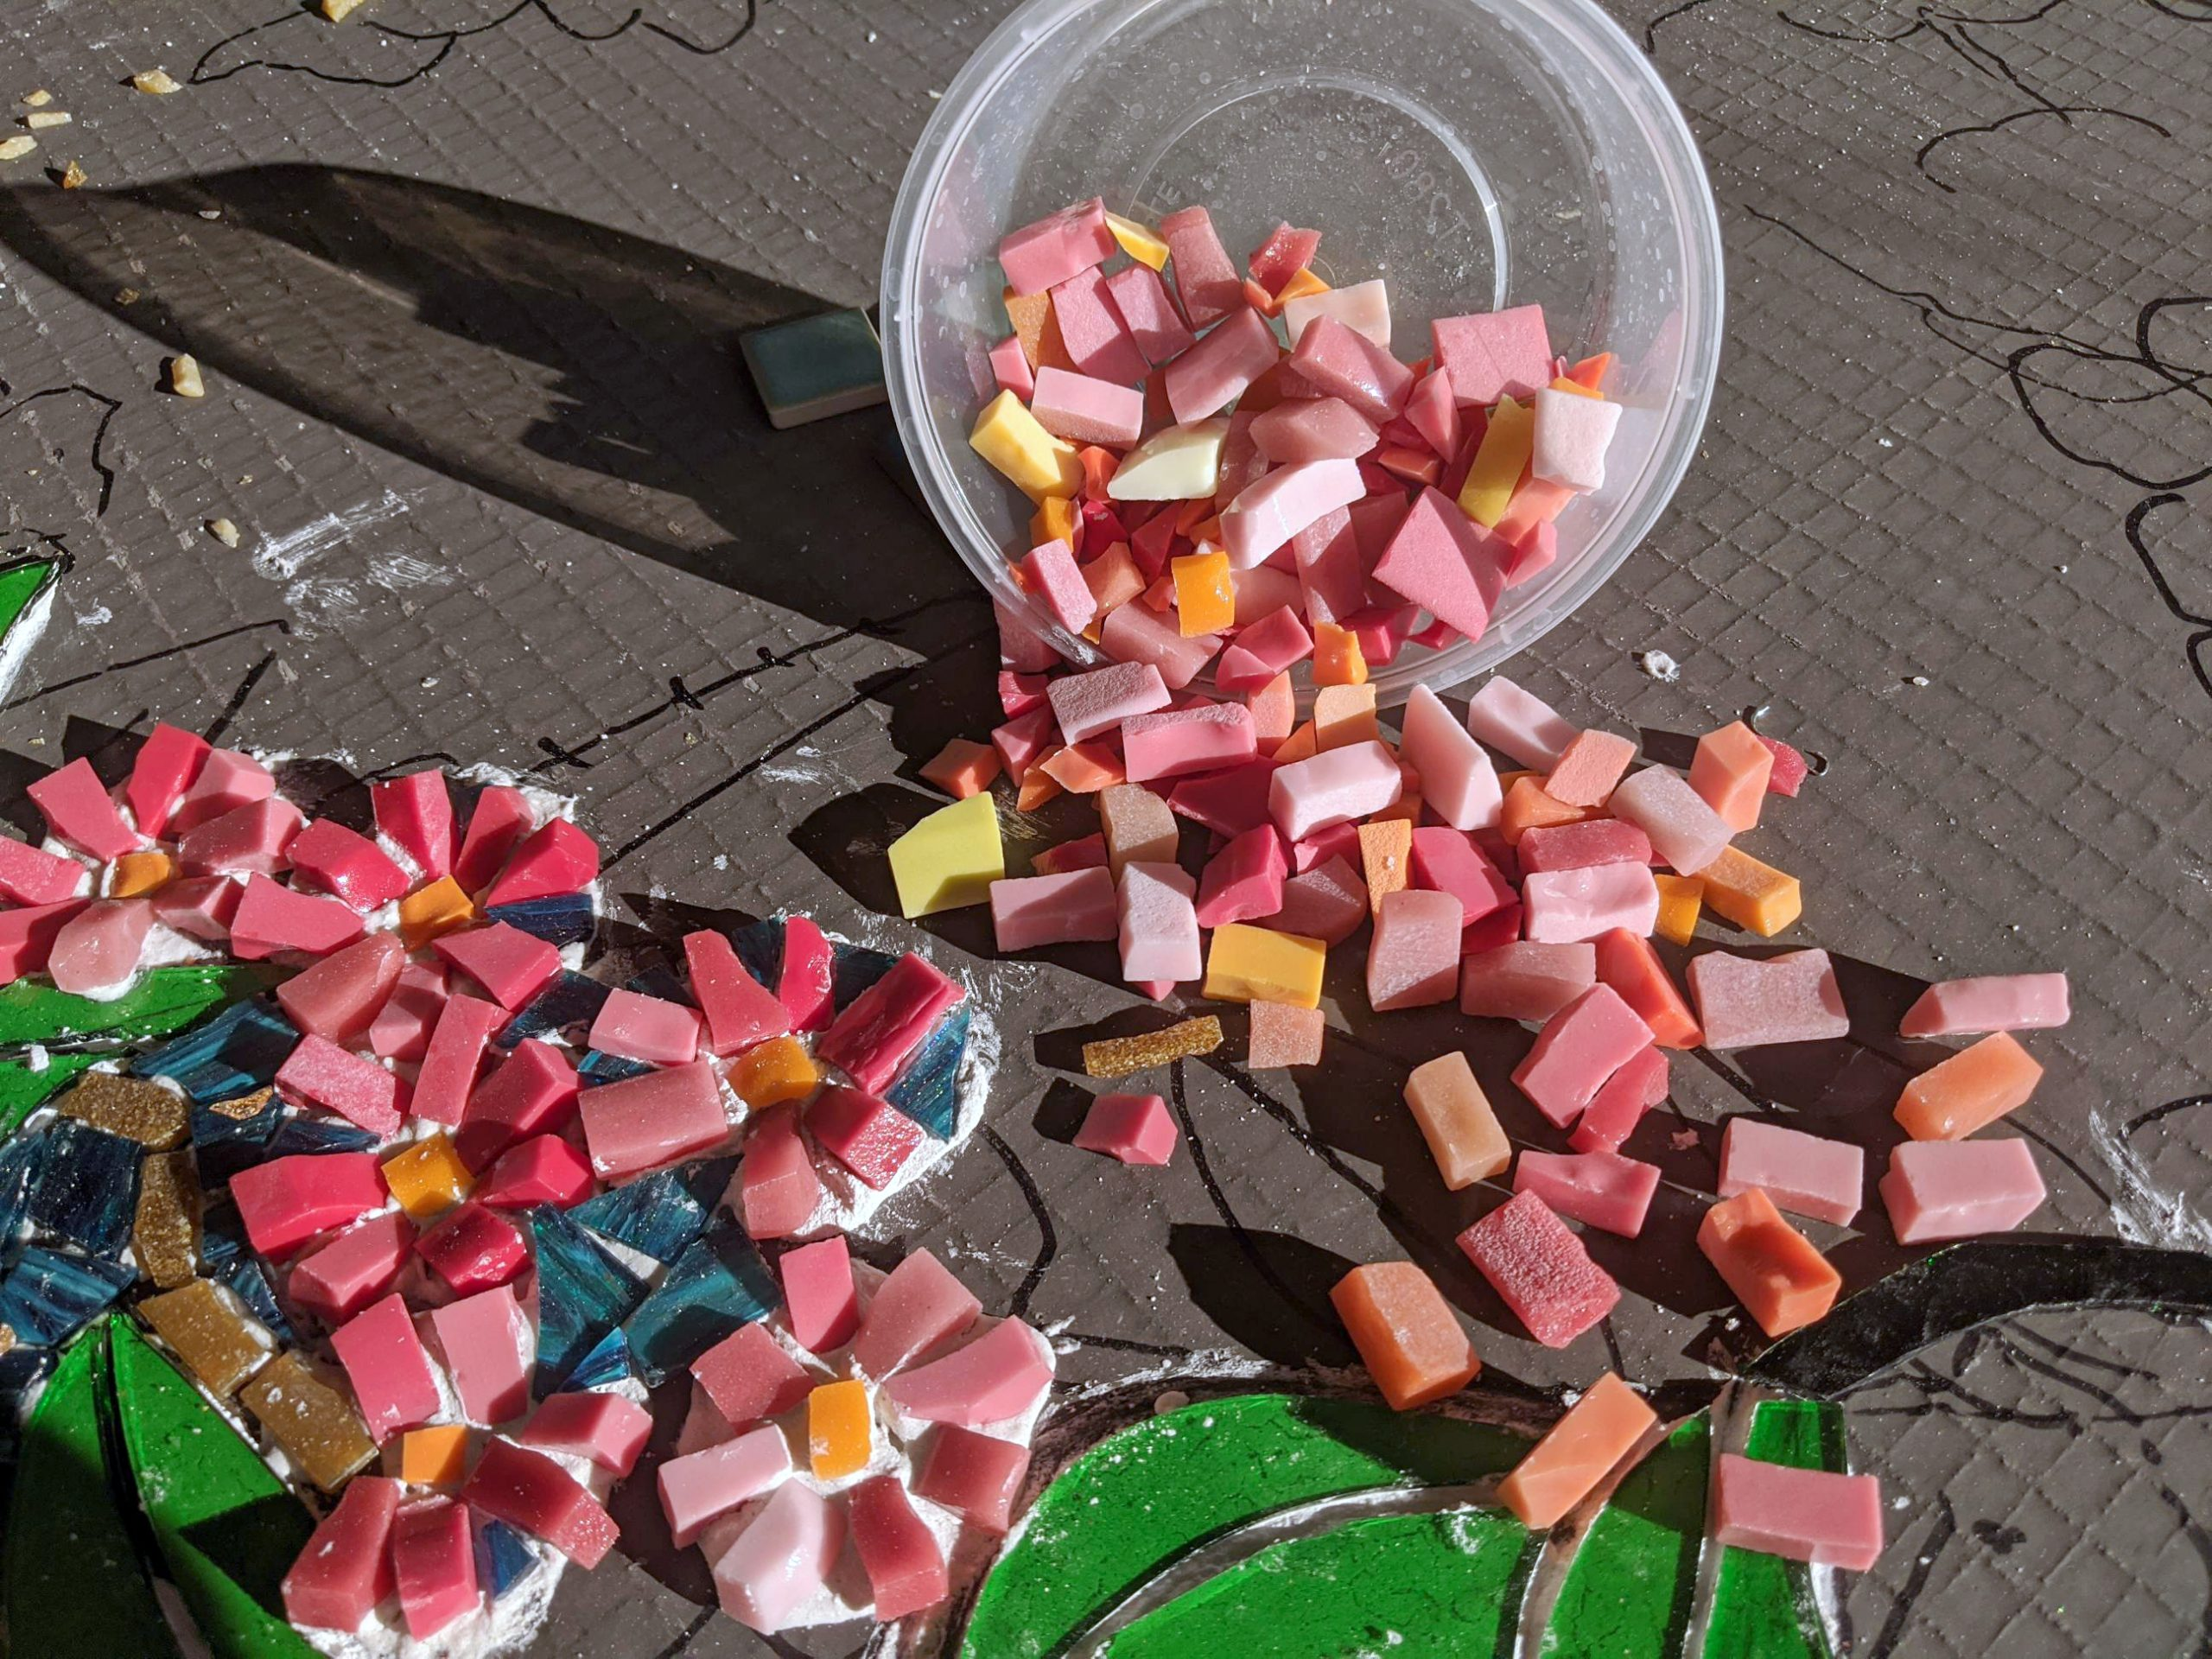 Small pieces of glass mosaics called smalti